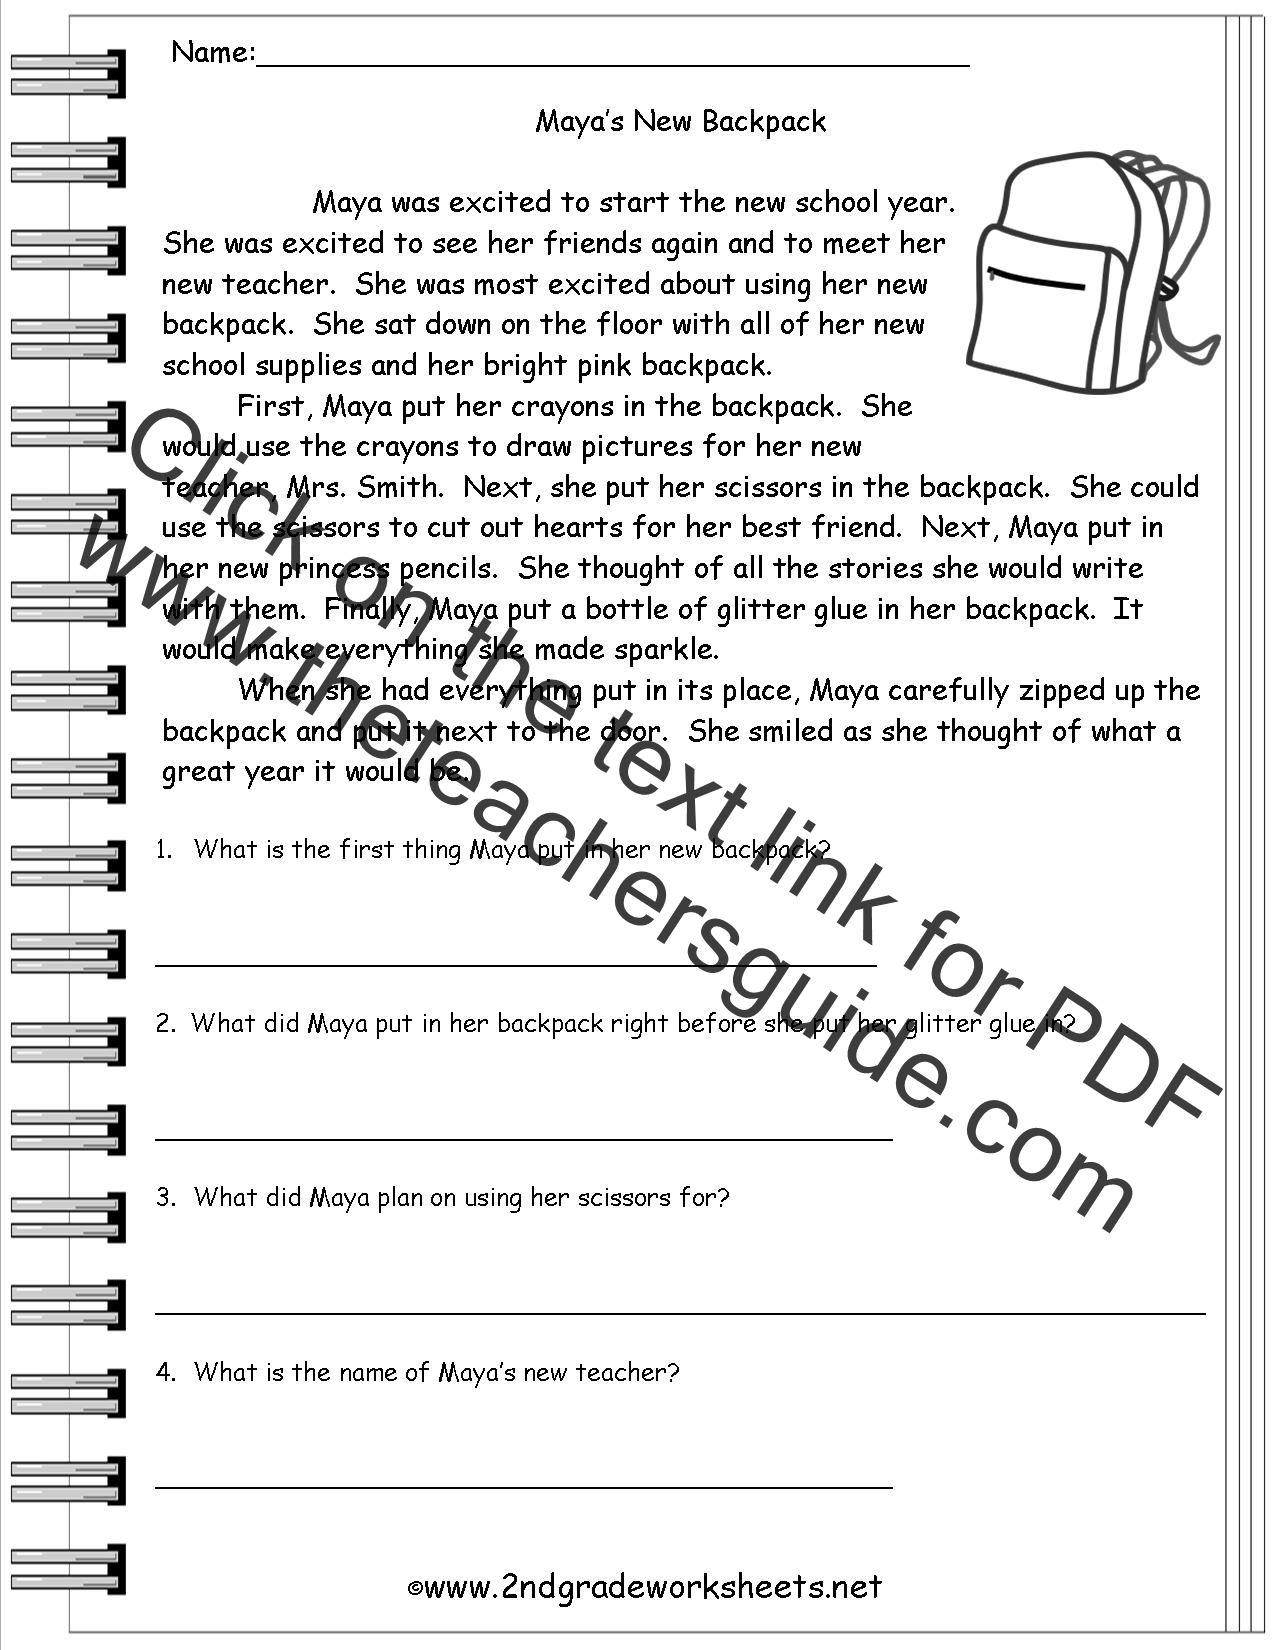 Worksheet Reading Worksheet For Grade 1 reading worksheeets literature worksheets